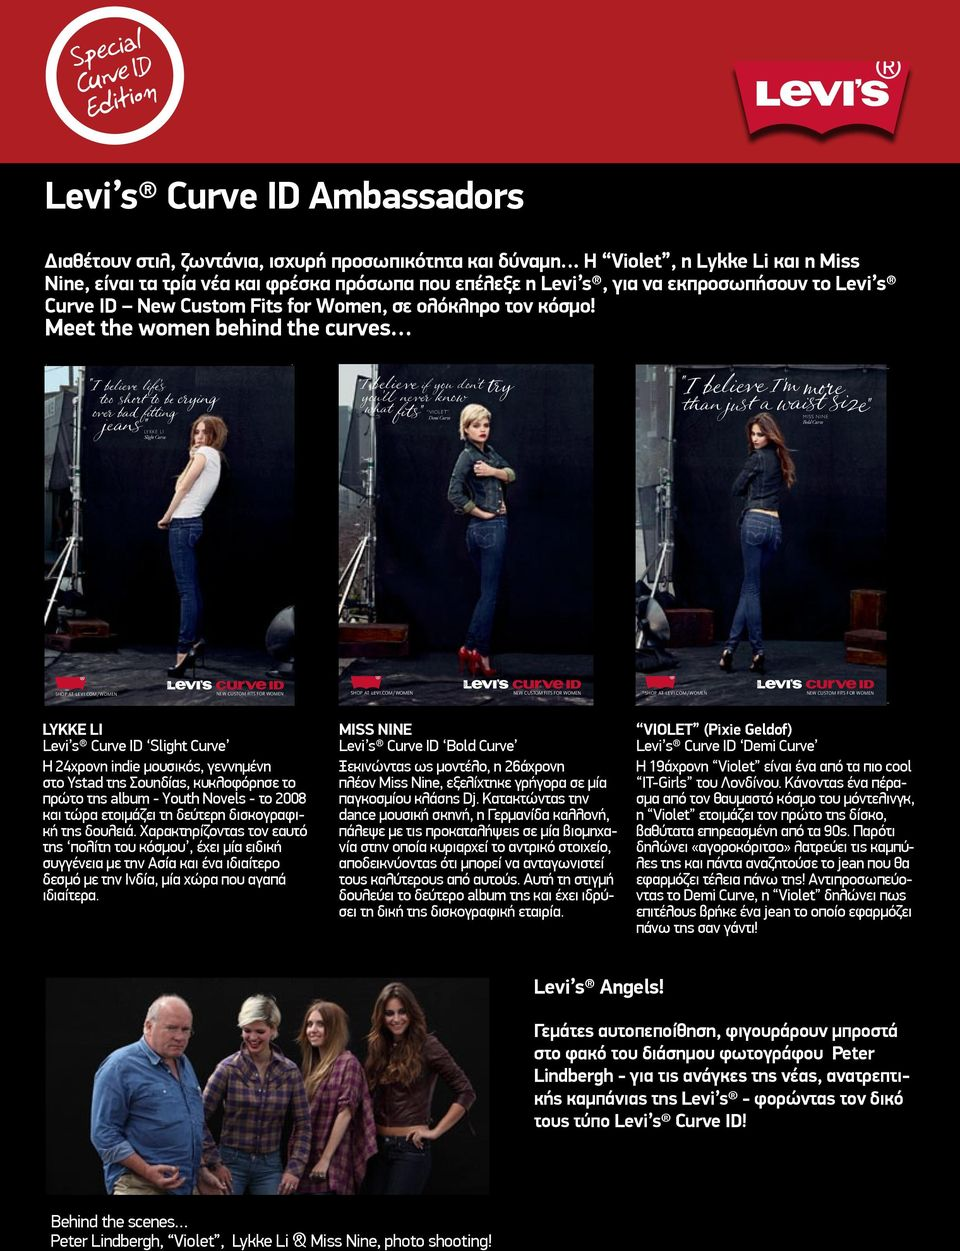 Meet the women behind the curves I believe life s too short to be crying over bad fitting jeans LYKKE LI Slight Curve I believe if you don t try you ll never know what fits VIOLET Demi Curve I